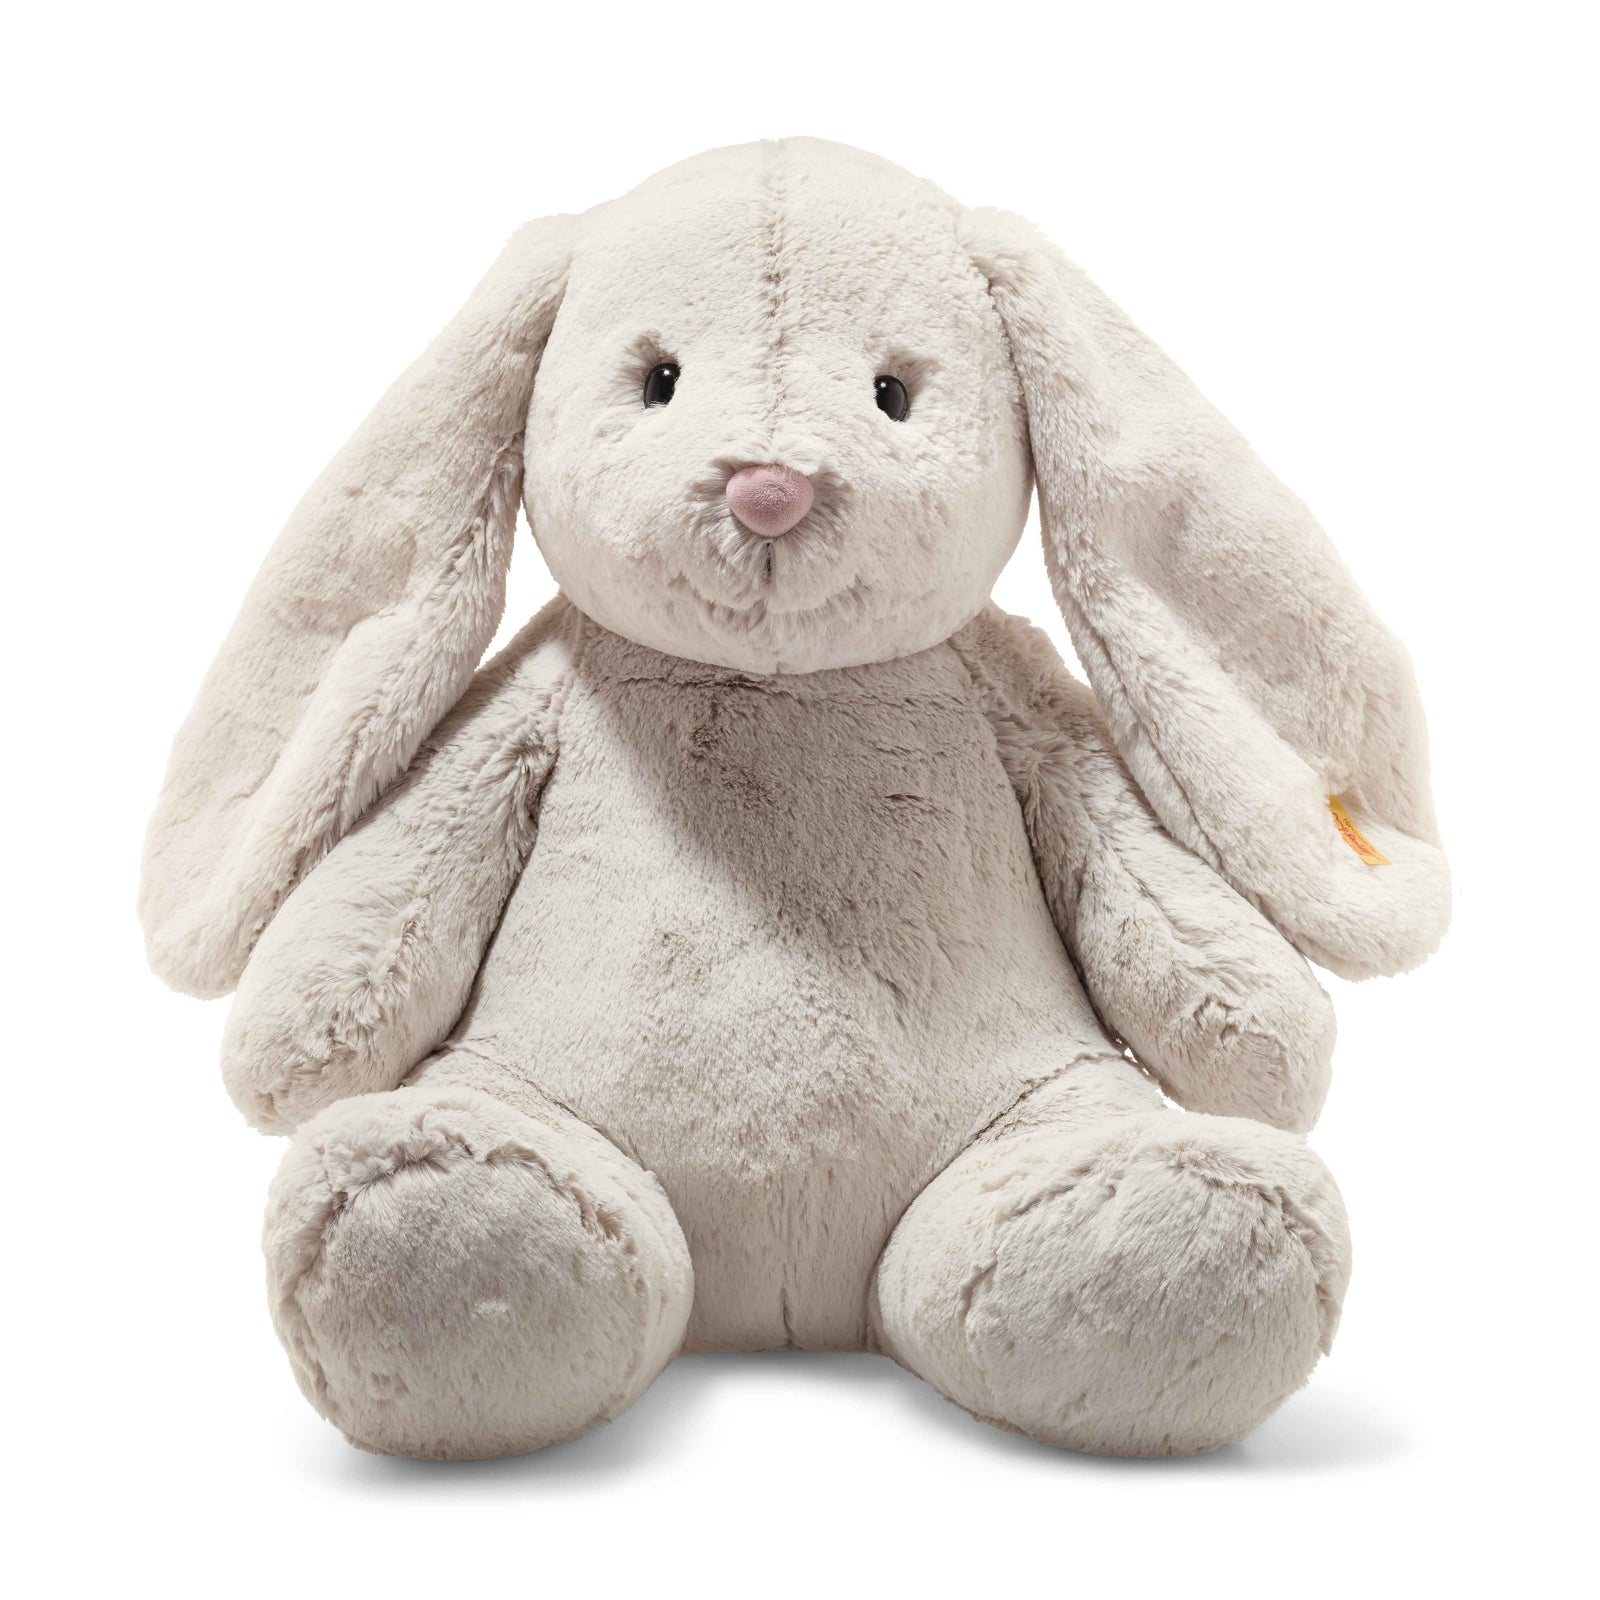 Steiff Soft & Cuddly Hoppie Rabbit - EAN 080913